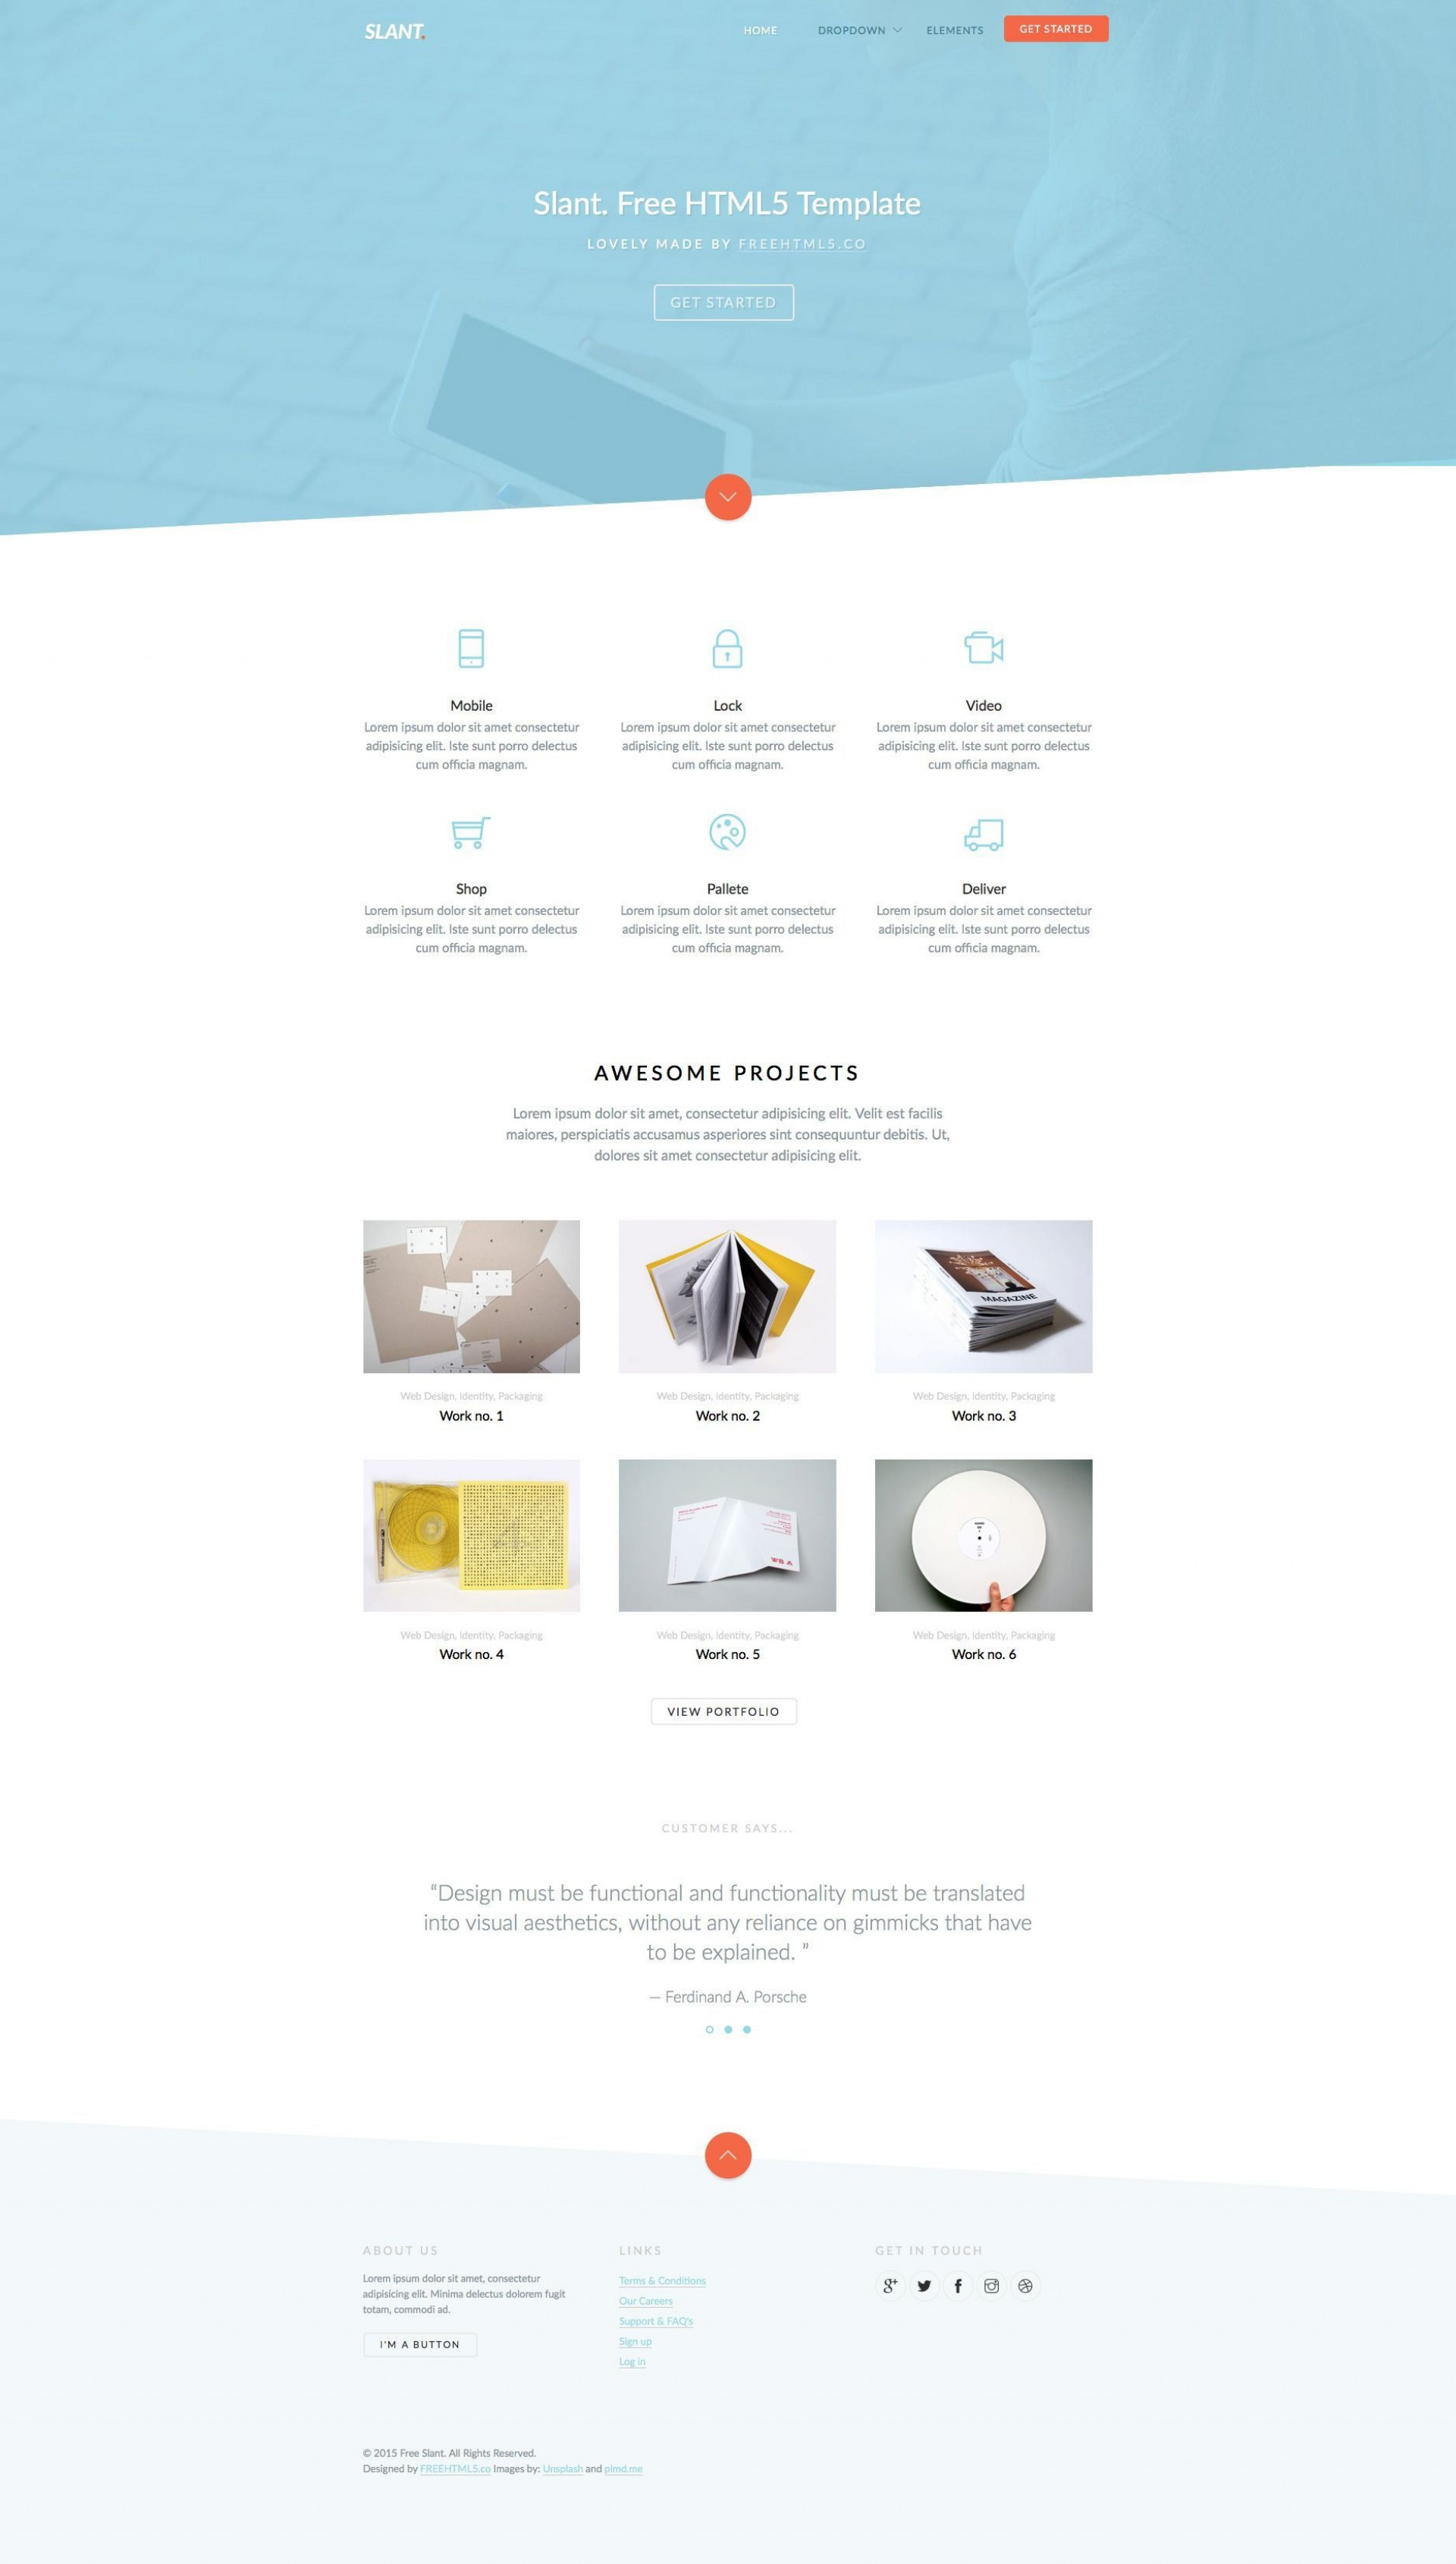 003 Formidable Free Responsive Landing Page Template Picture  Templates Pardot Html51920